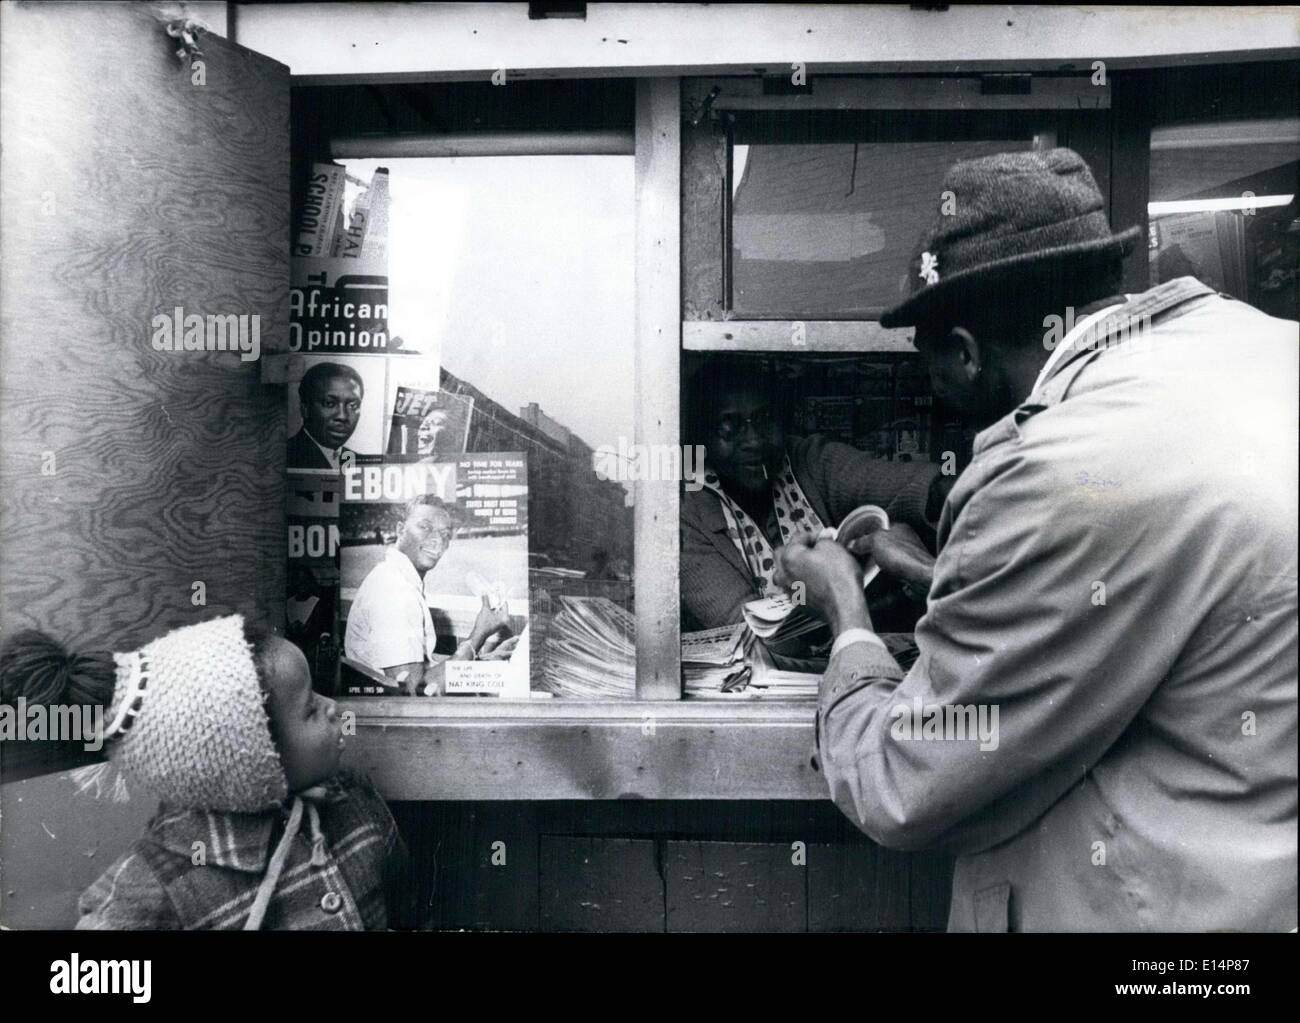 Apr. 12, 2012 - Here in Harlem most of the residents are black, so magazines such as Ebony, Jet, and African Opinion are popular. - Stock Image